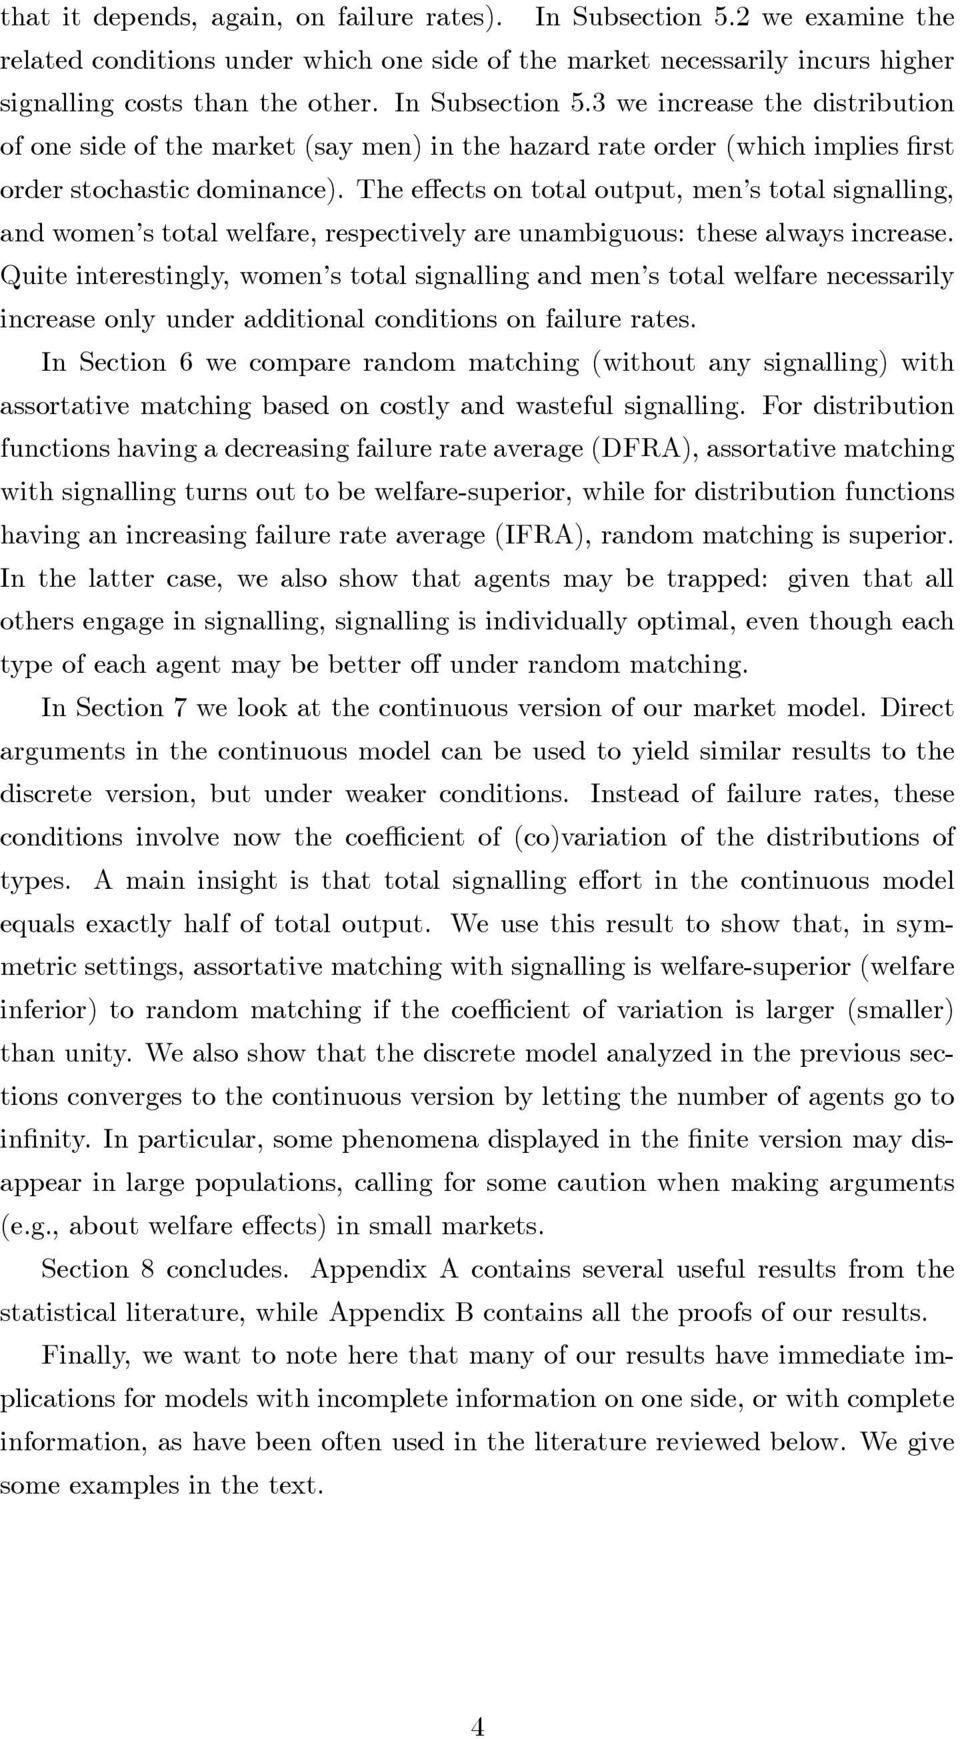 signalling theory essay Market signalling and its connection to noncooperative garne theory  role in  setting the terms of the contract, are often referred to as examples of market.